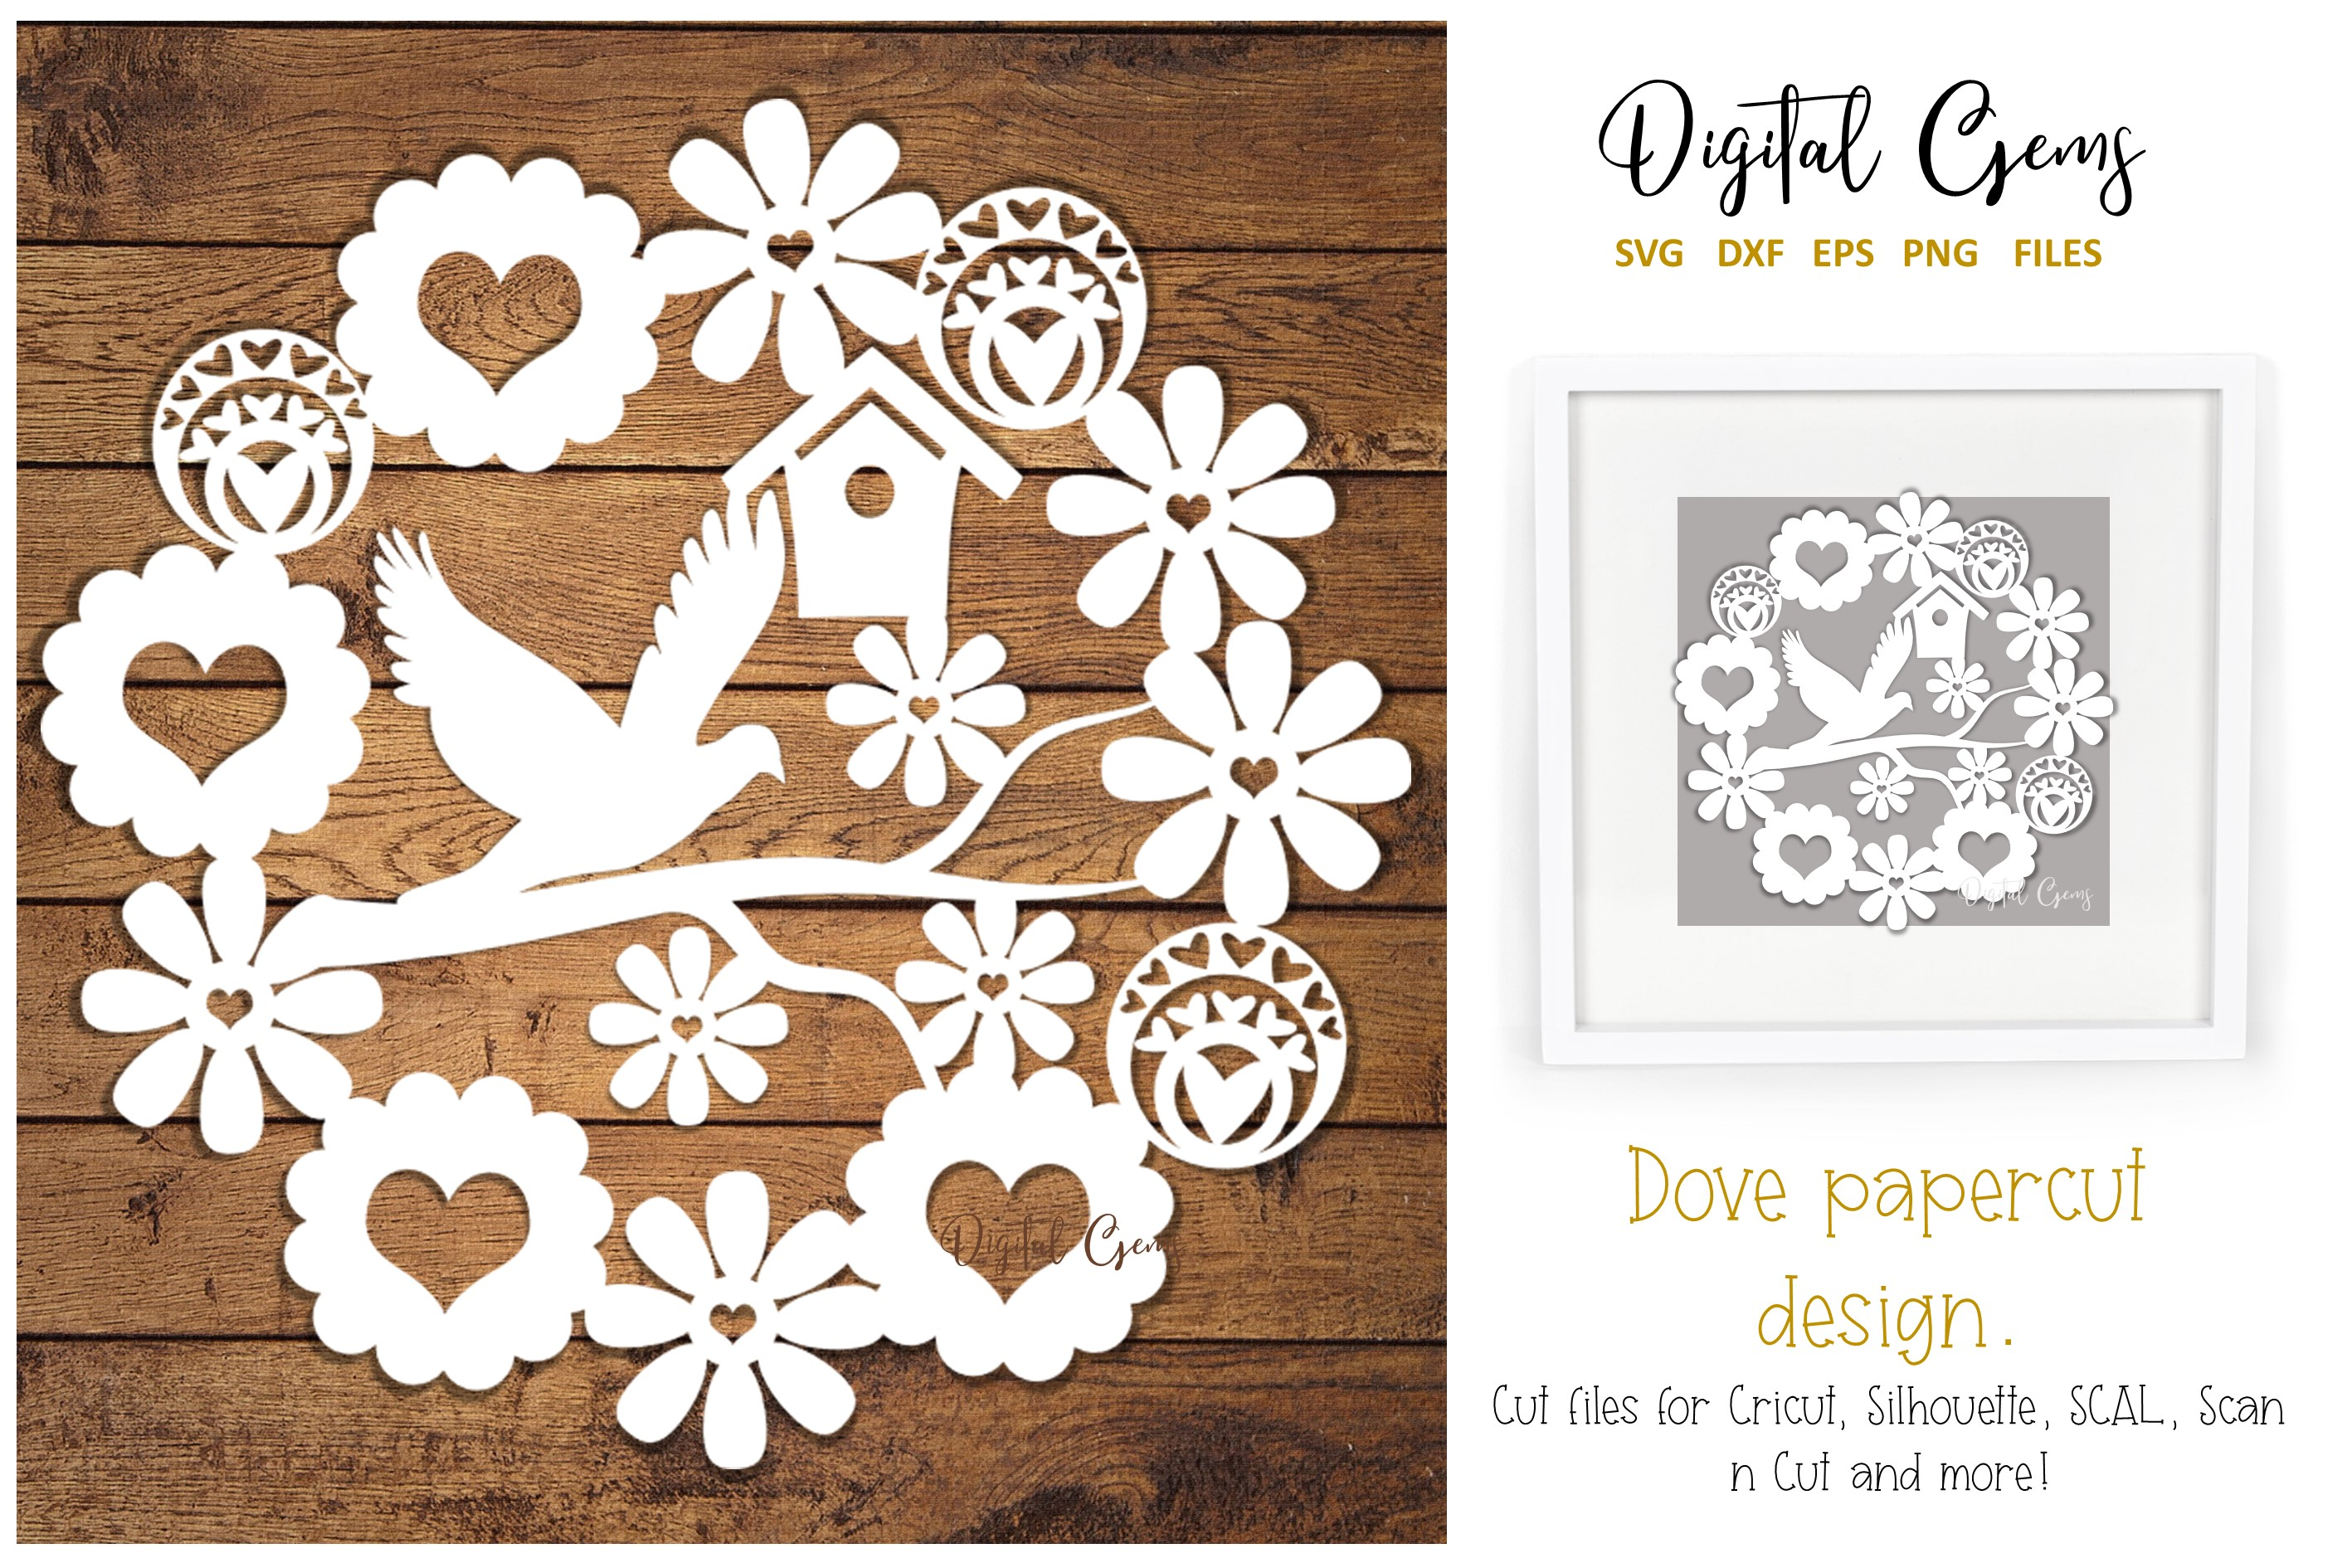 Download Free Dove Paper Cut Design Graphic By Digital Gems Creative Fabrica for Cricut Explore, Silhouette and other cutting machines.